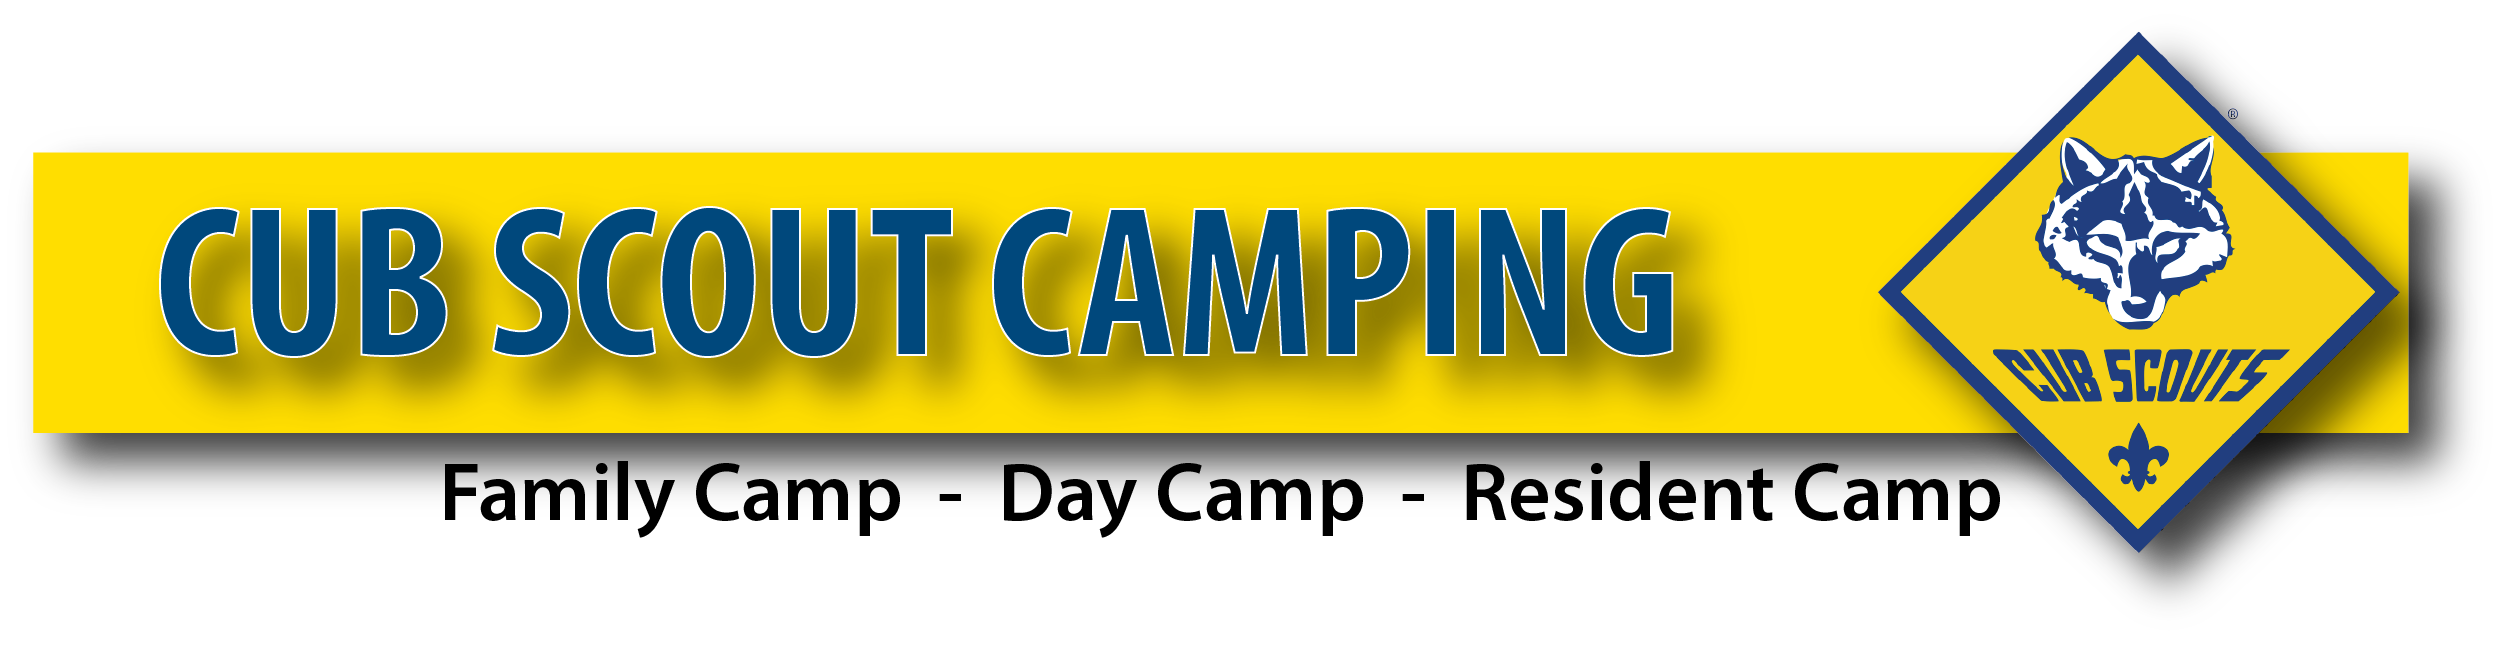 Cub Scout Camping PNG-PlusPNG.com-2500 - Cub Scout Camping PNG